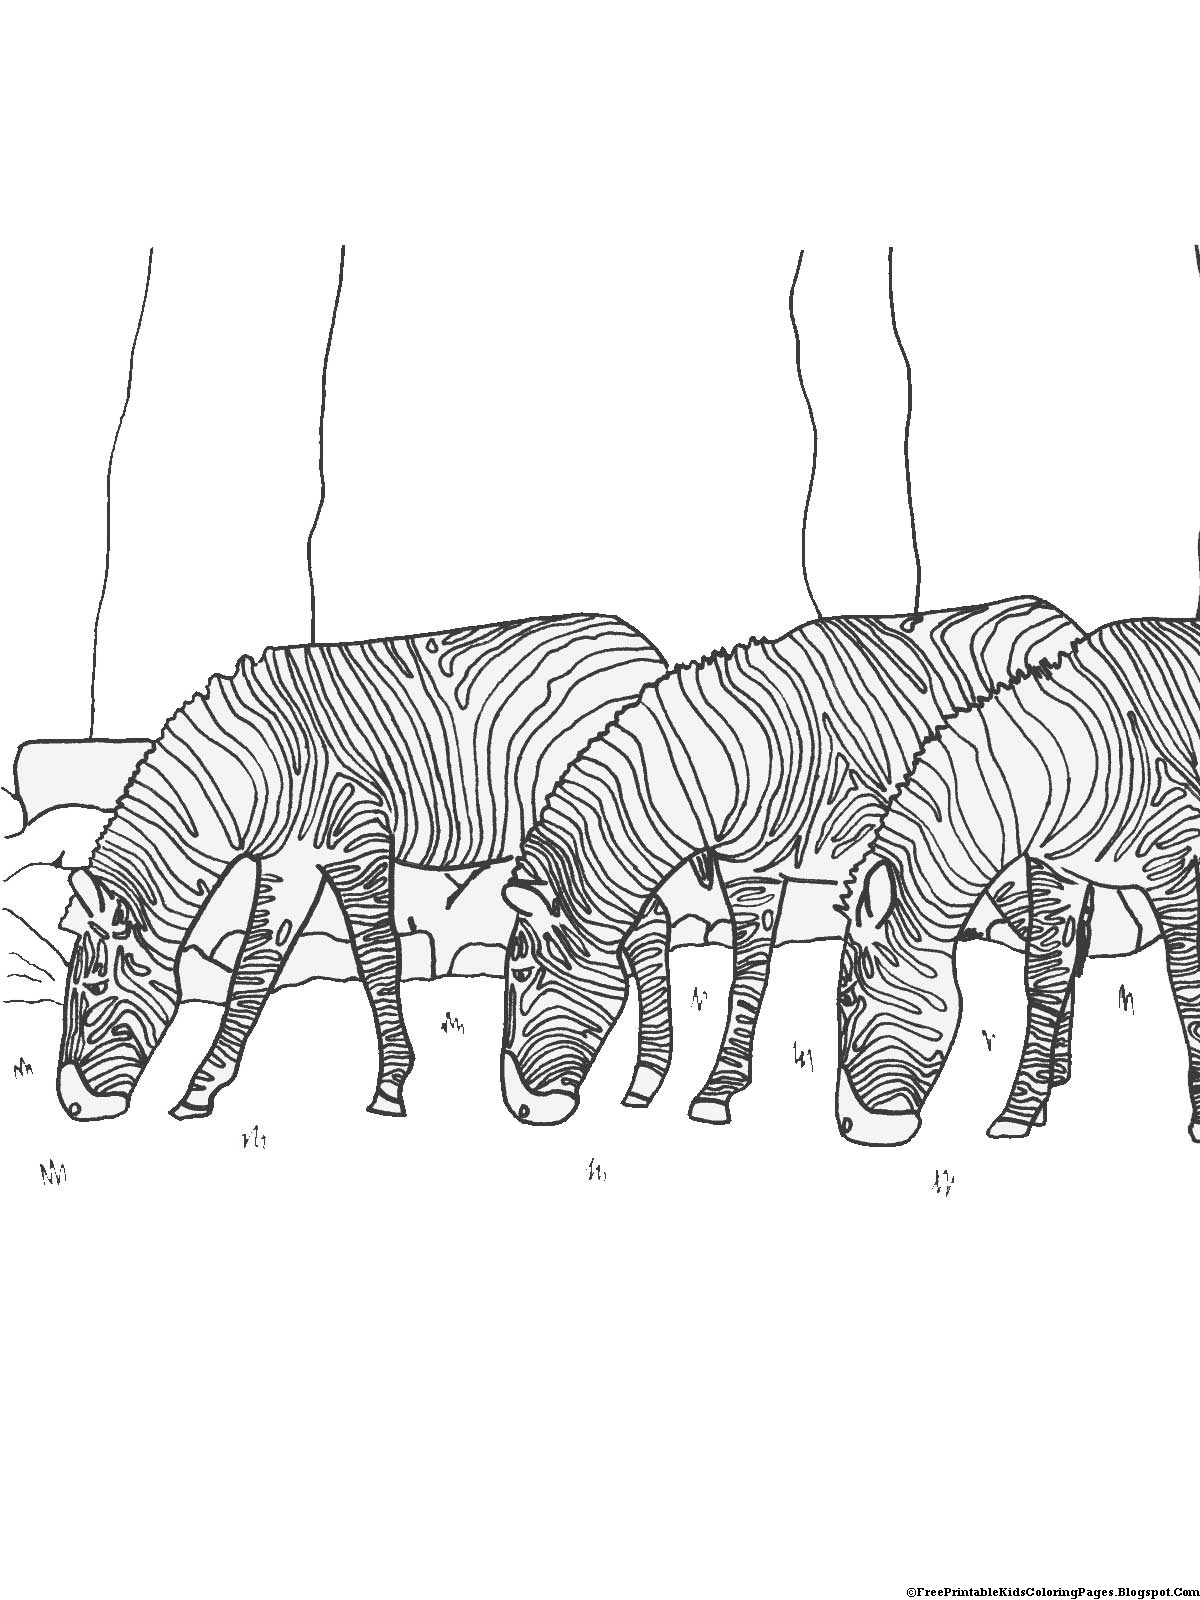 zebra colouring pages to print free printable zebra coloring pages for kids animal place zebra to colouring print pages